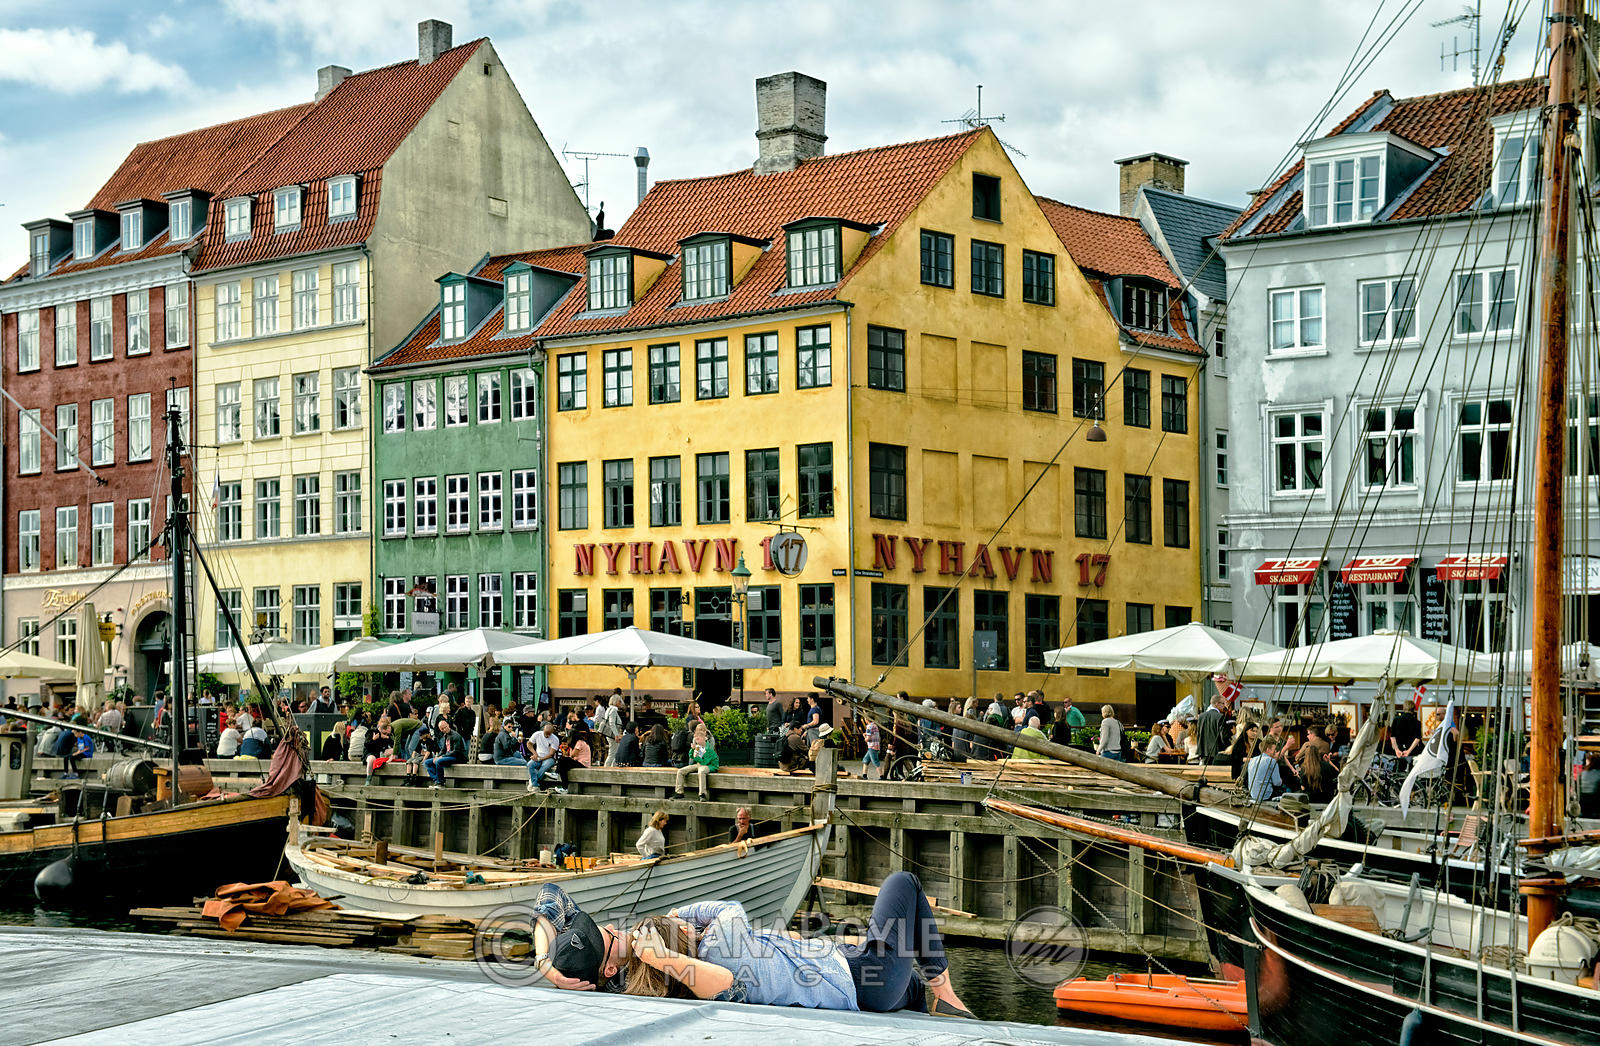 Relaxing at Nyhavn